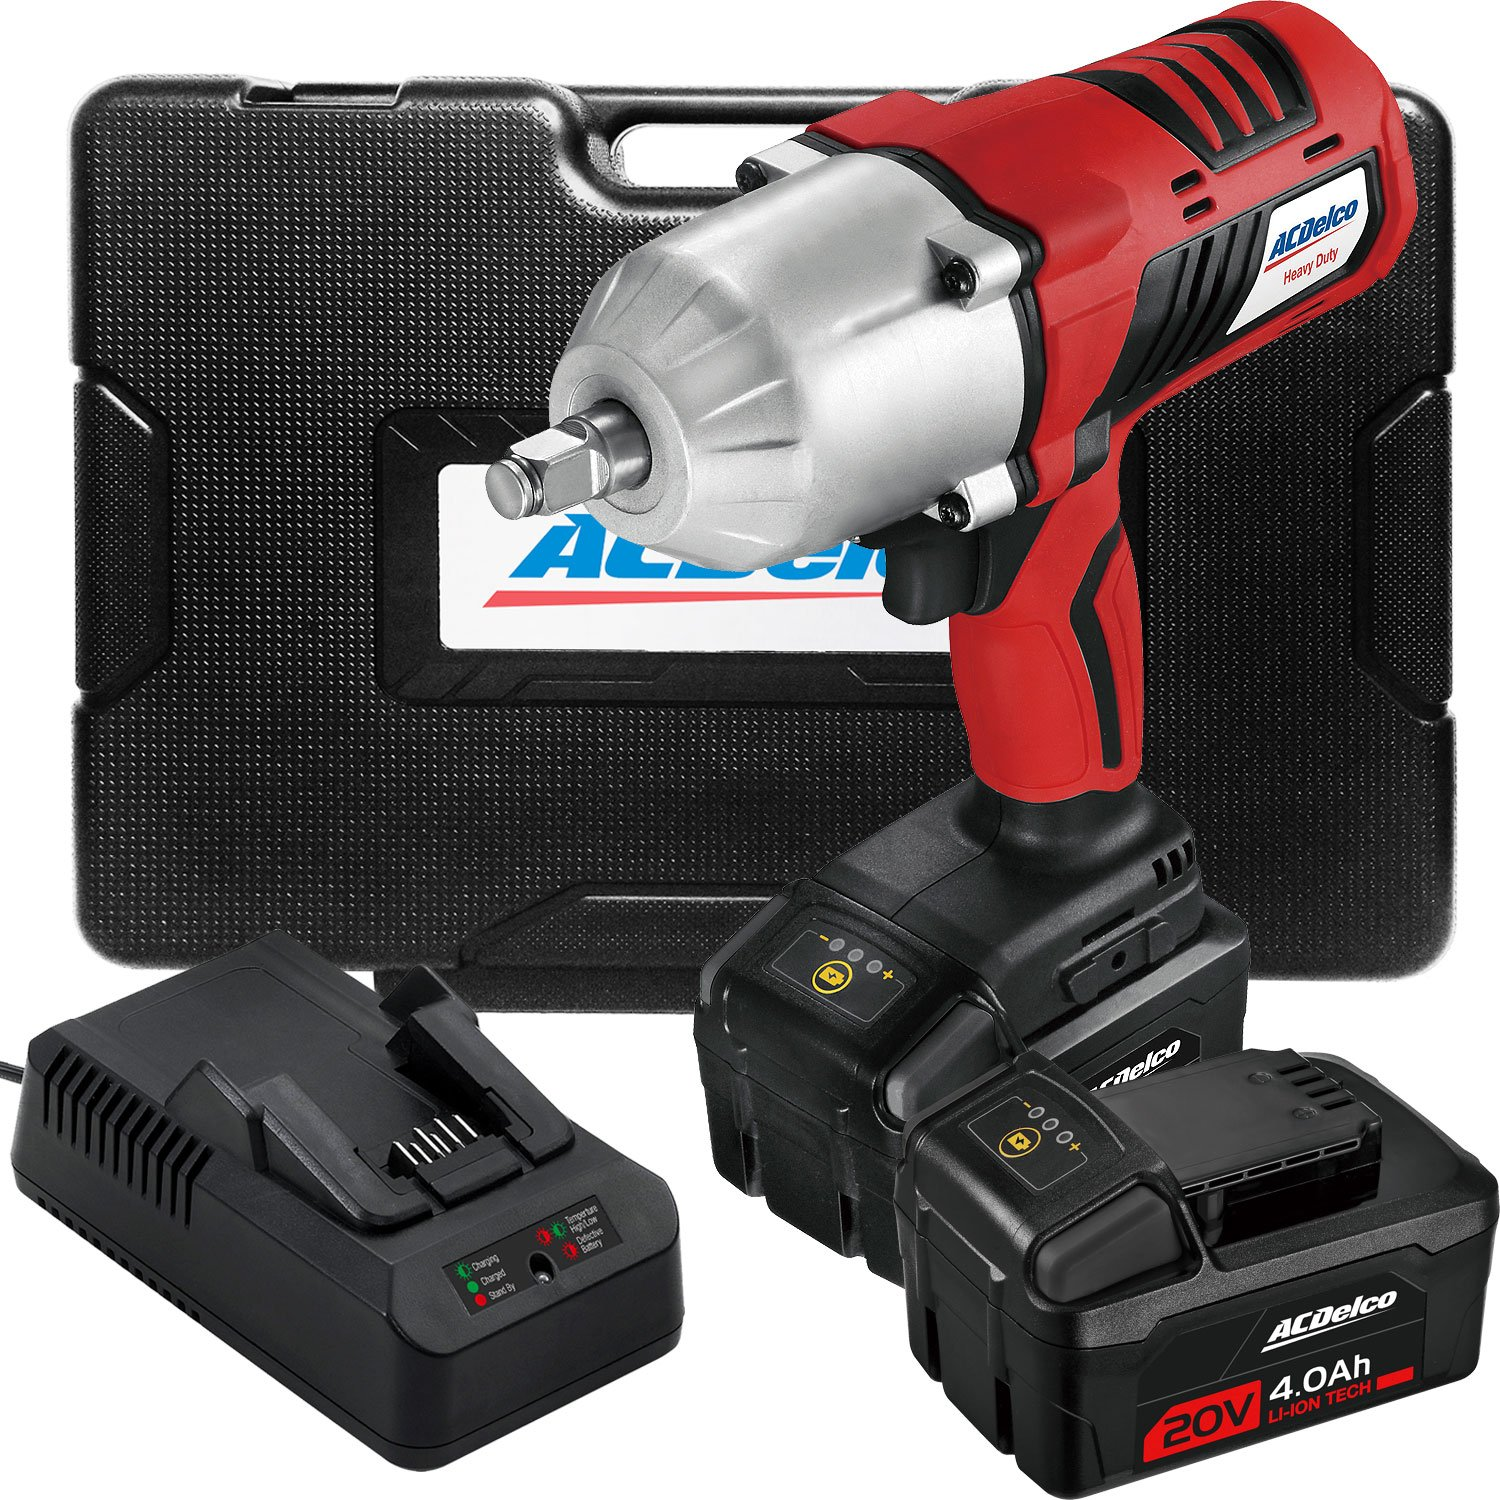 ACDelco Cordless Li-ion 20V JUMBO High Torque Impact Wrench Kit with Friction Ring - 4.0Ah Two Batteries, Fast Charger, and Carrying case,ARI20170